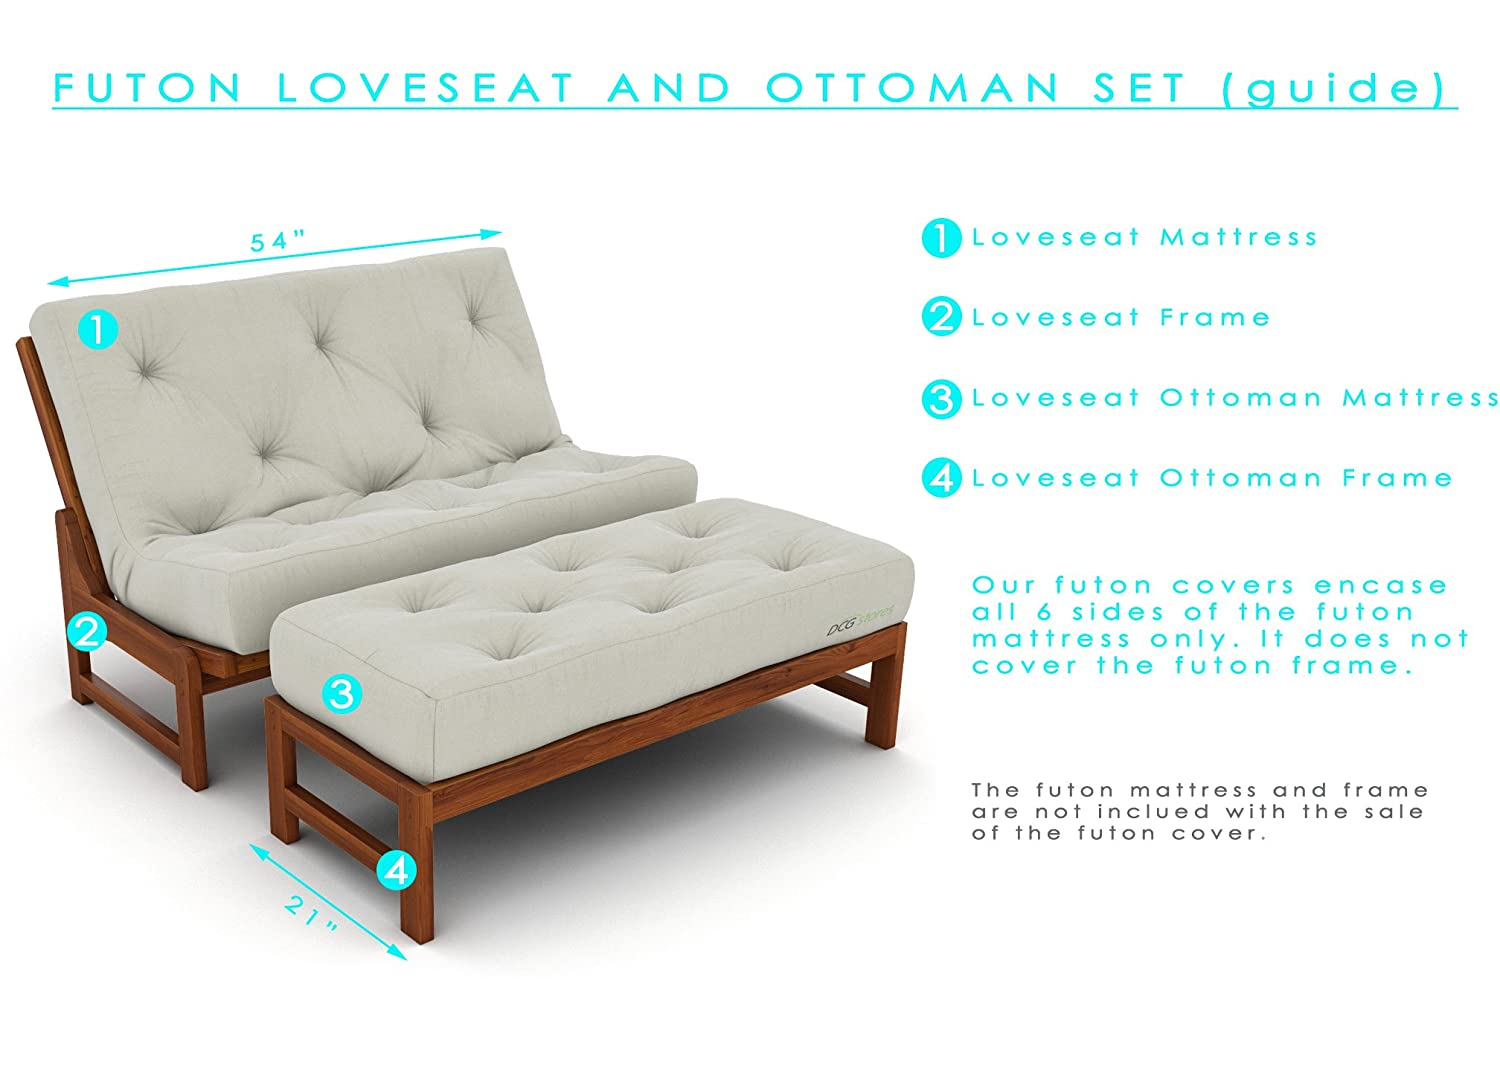 futon rev heart cotton covers products fabric organic of soaring